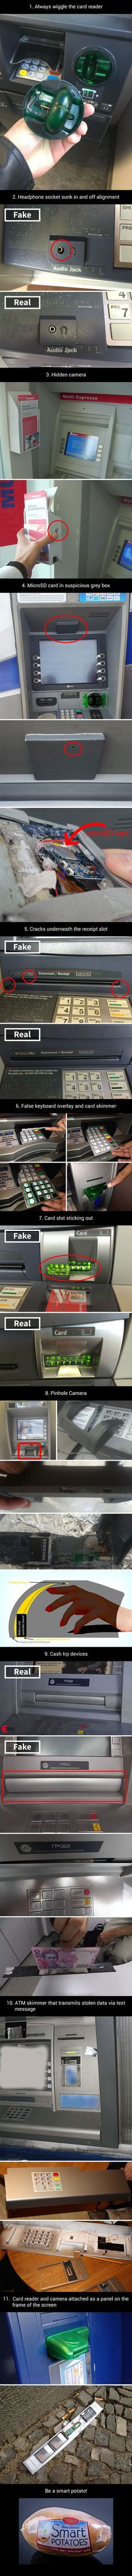 ATM scams that you should be aware of